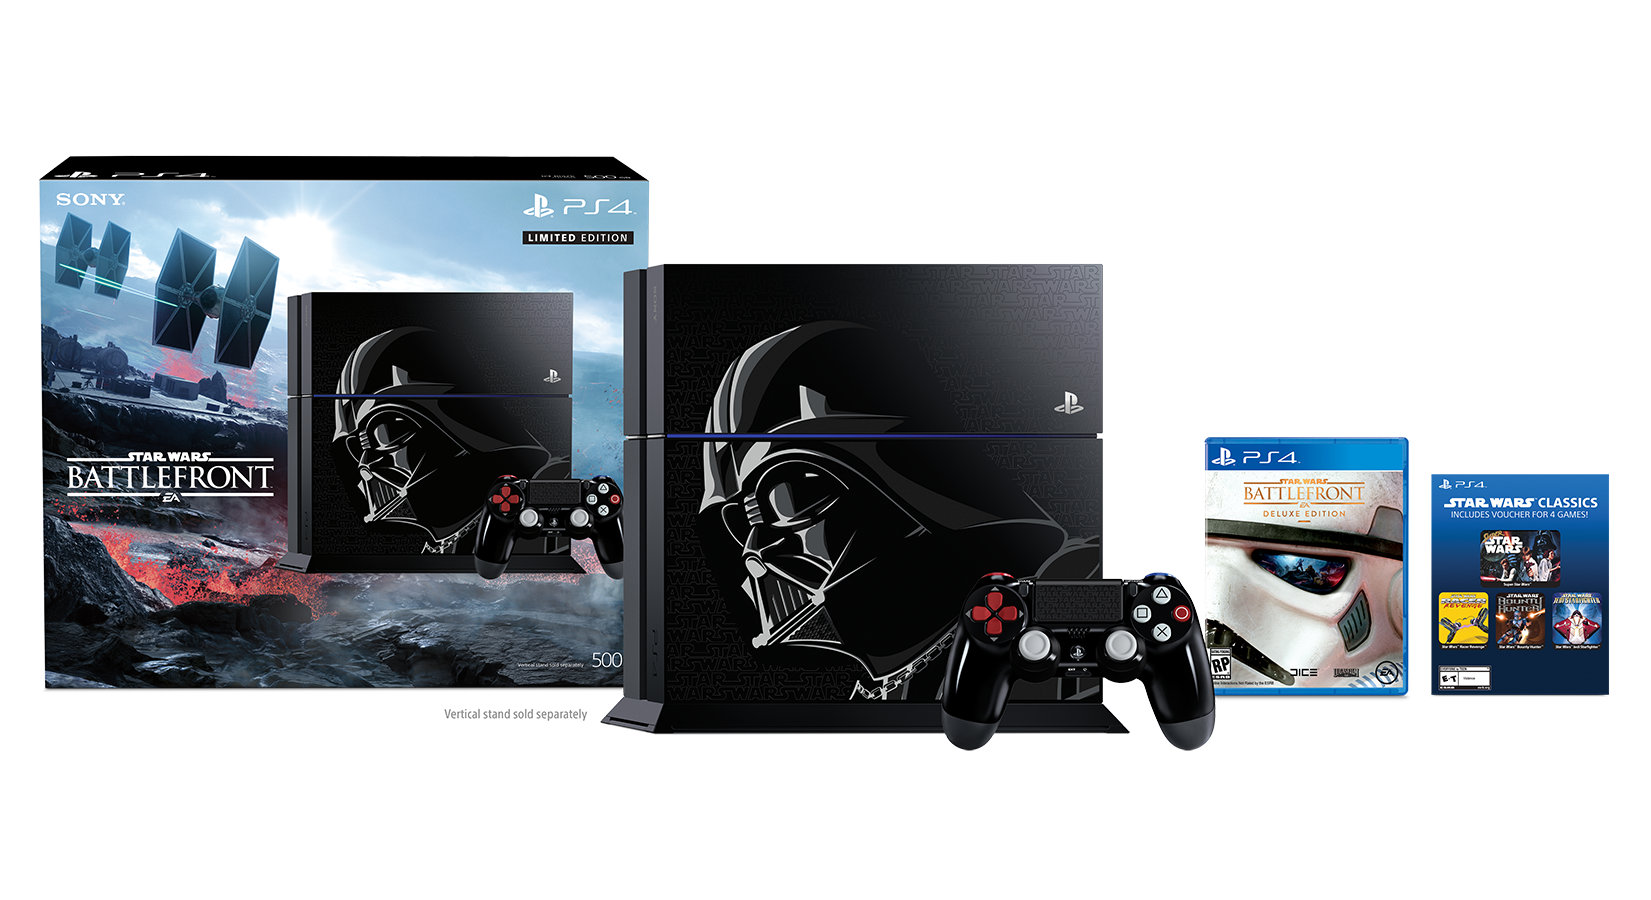 Star Wars Battlefront I, II, III: Sony дарит Star Wars Battlefront за подписку PlayStation Plus